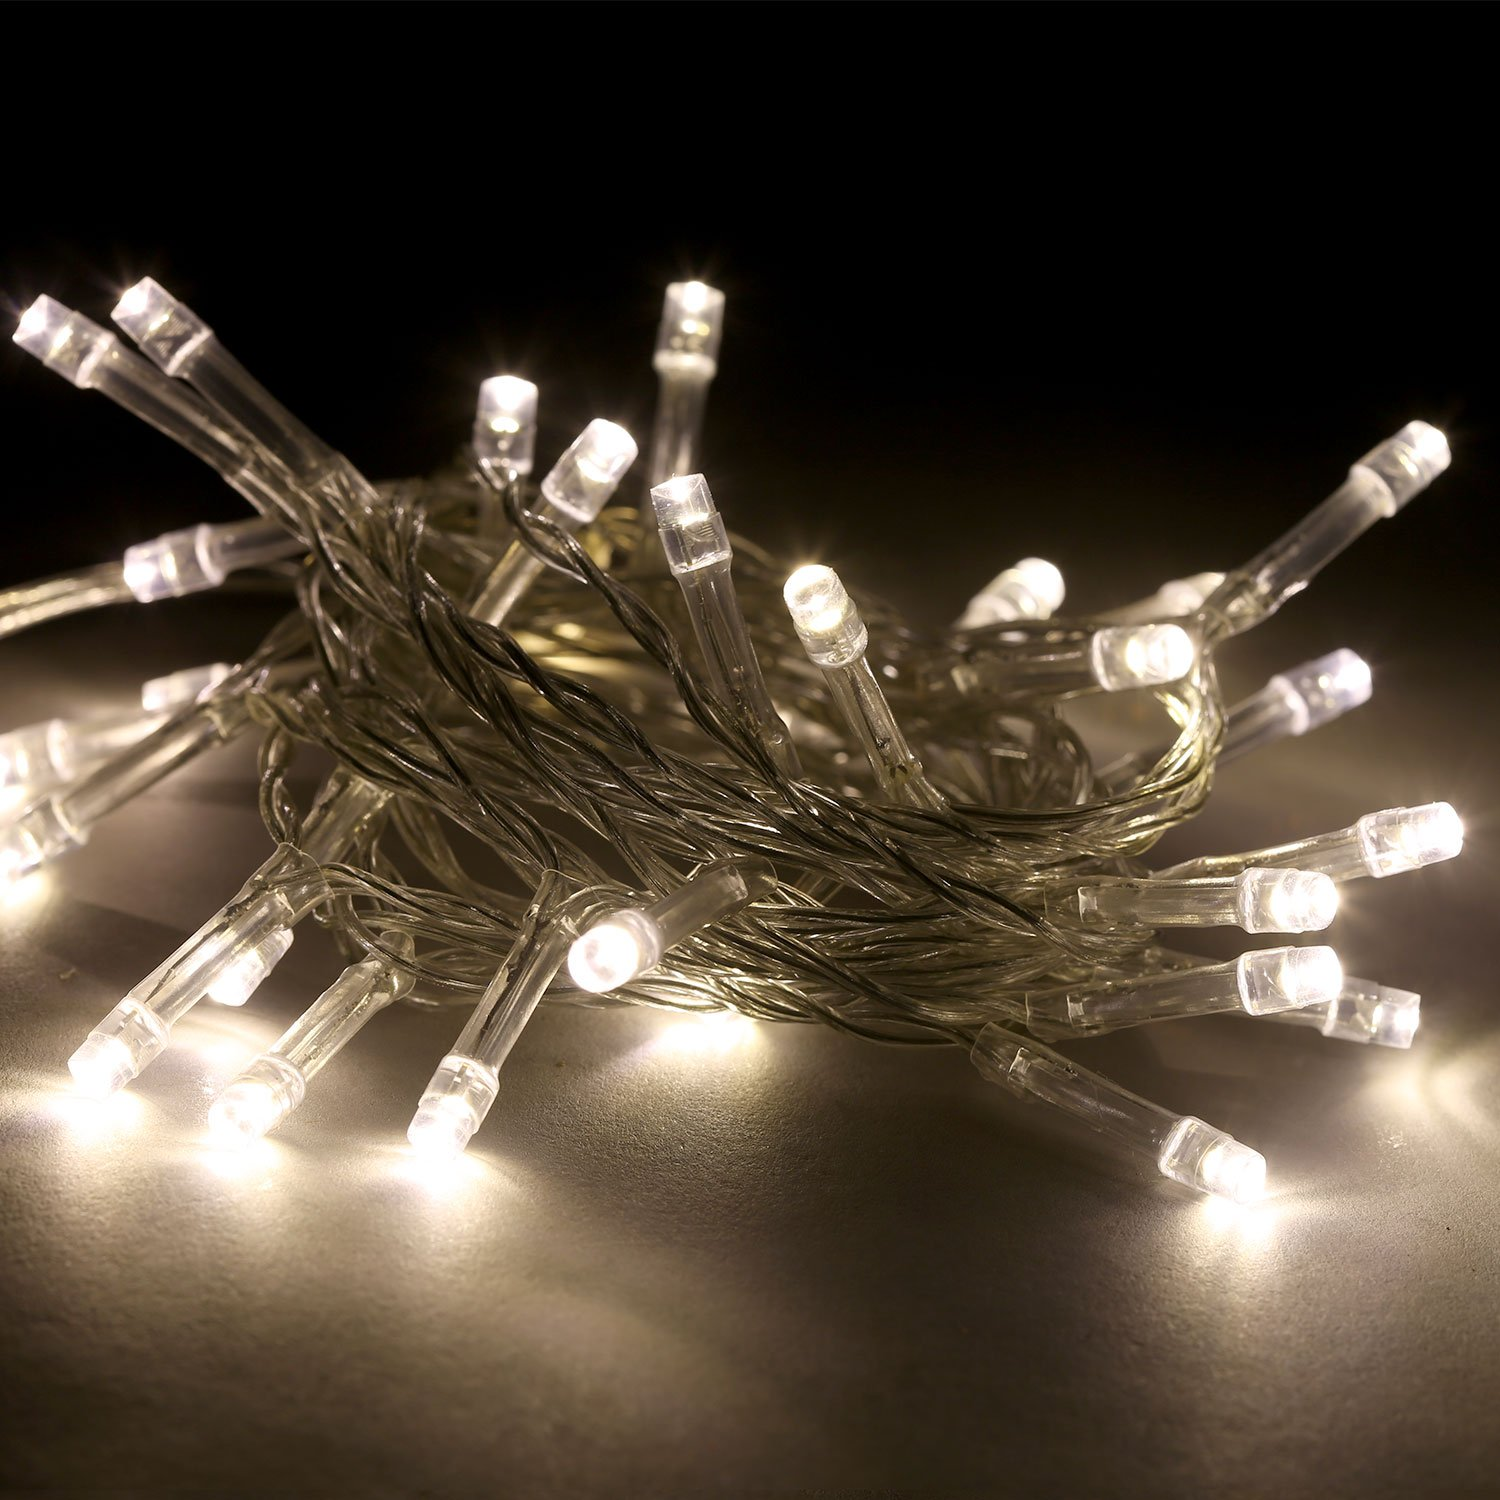 3 Pack Battery String Lights, 30 Warm White LEDs, 11 Ft. Strands, Batteries Included, Value Set by LampLust (Image #3)